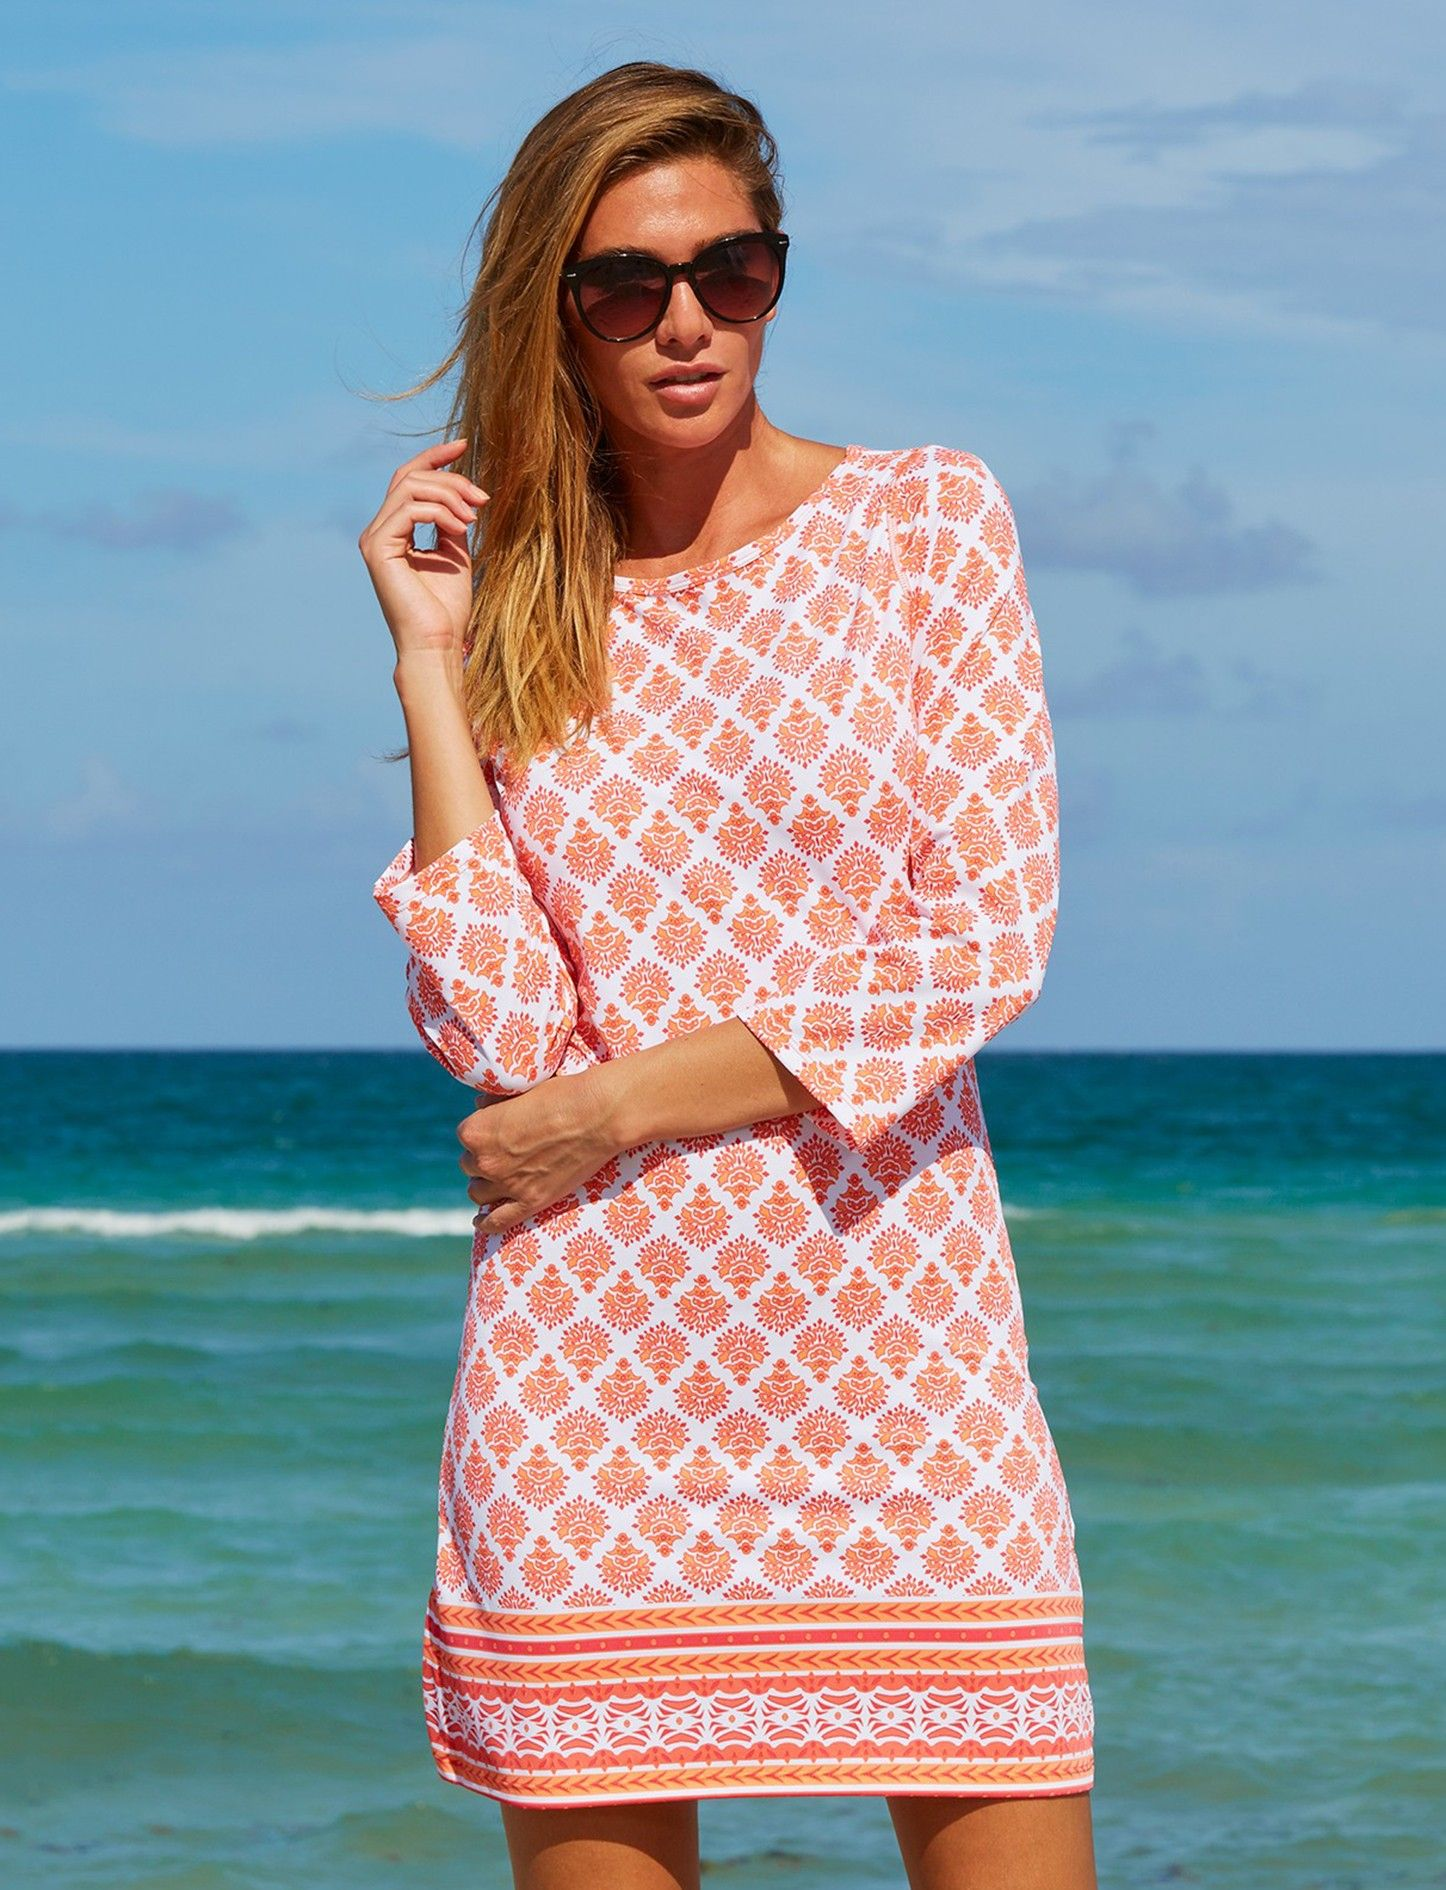 Cabana Life 50 Upf Sun Protective Clothing Pretty Dresses Casual Fashion For Women Over 40 Sundresses Women [ 1890 x 1446 Pixel ]